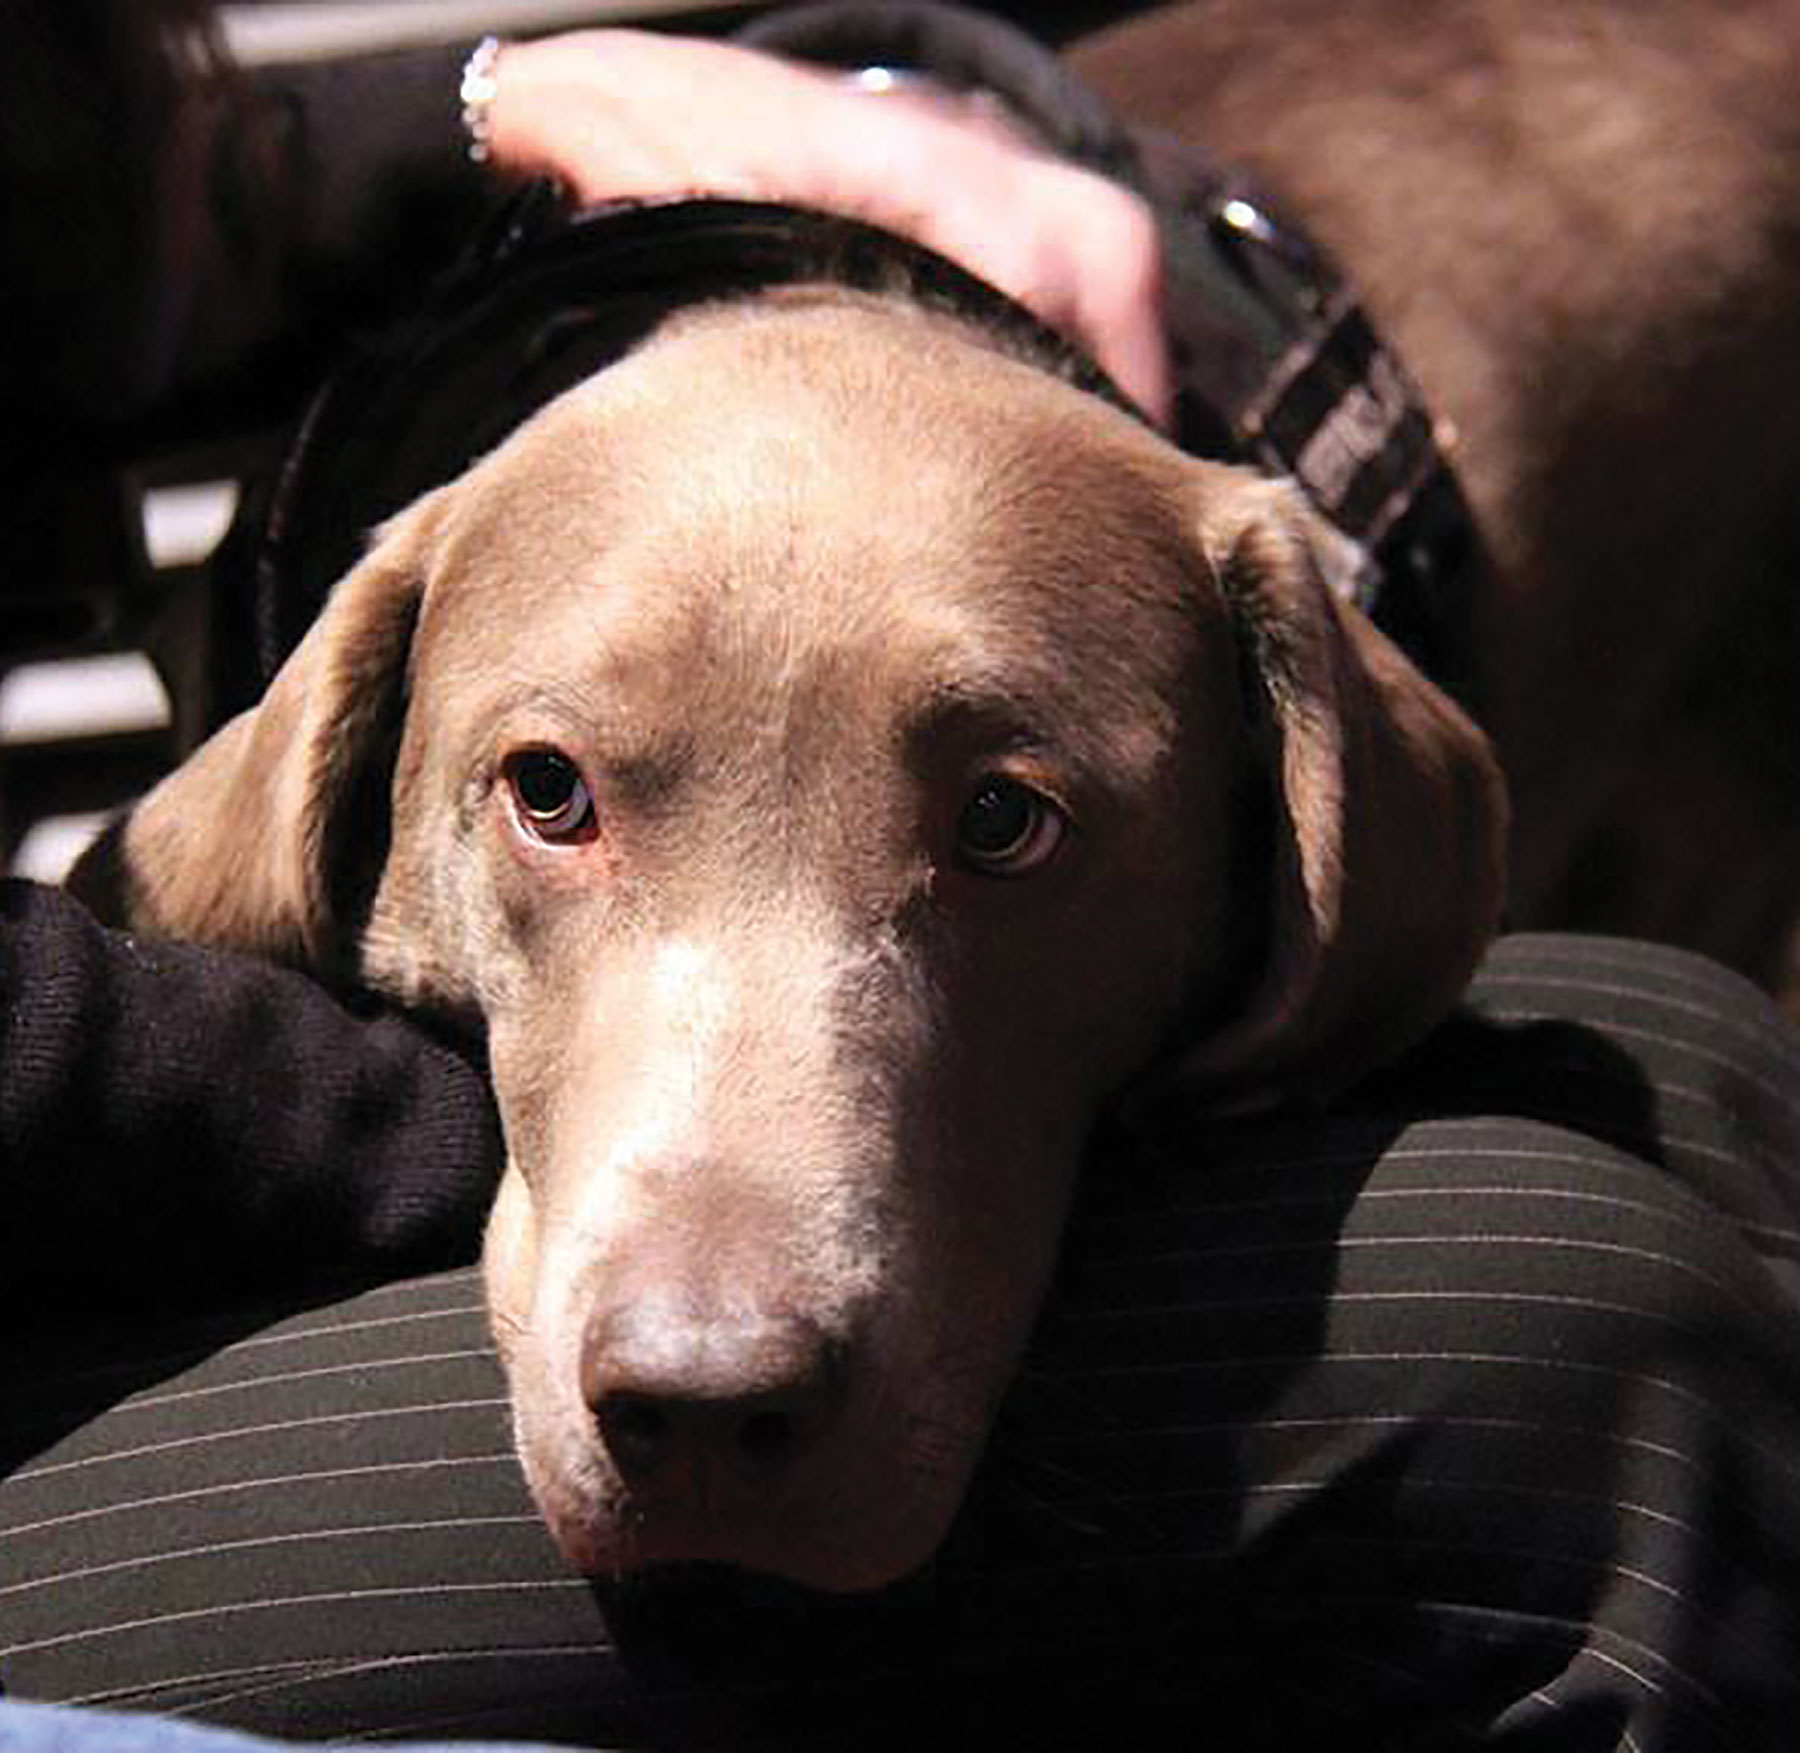 When Should Service Dogs Be Admitted into the Lab? | The Scientist